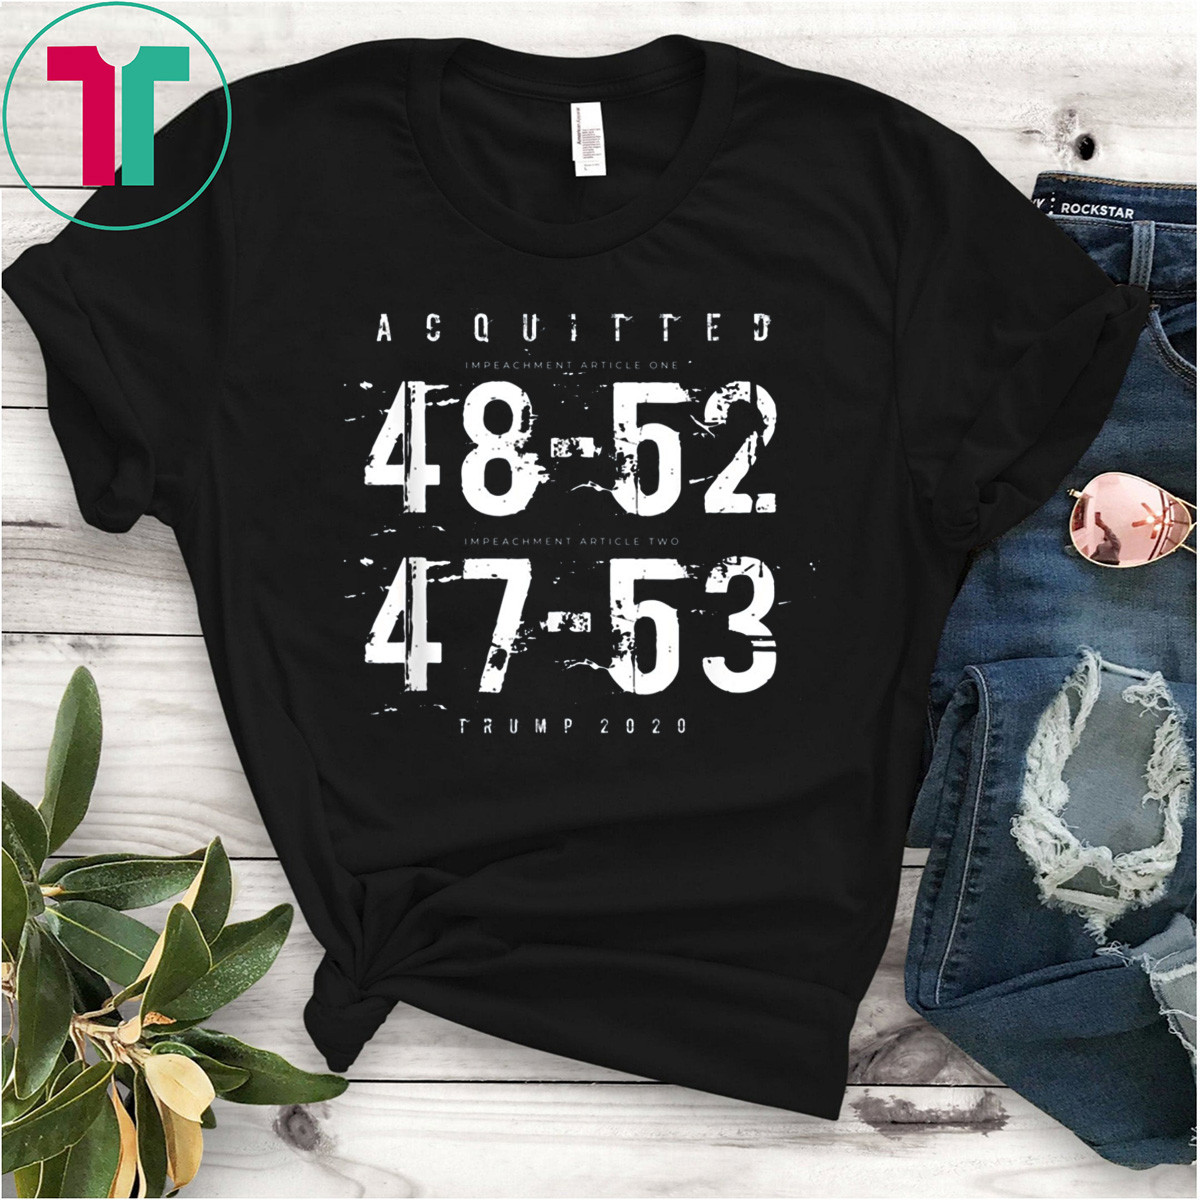 Acquitted Trump 2020 T-Shirt